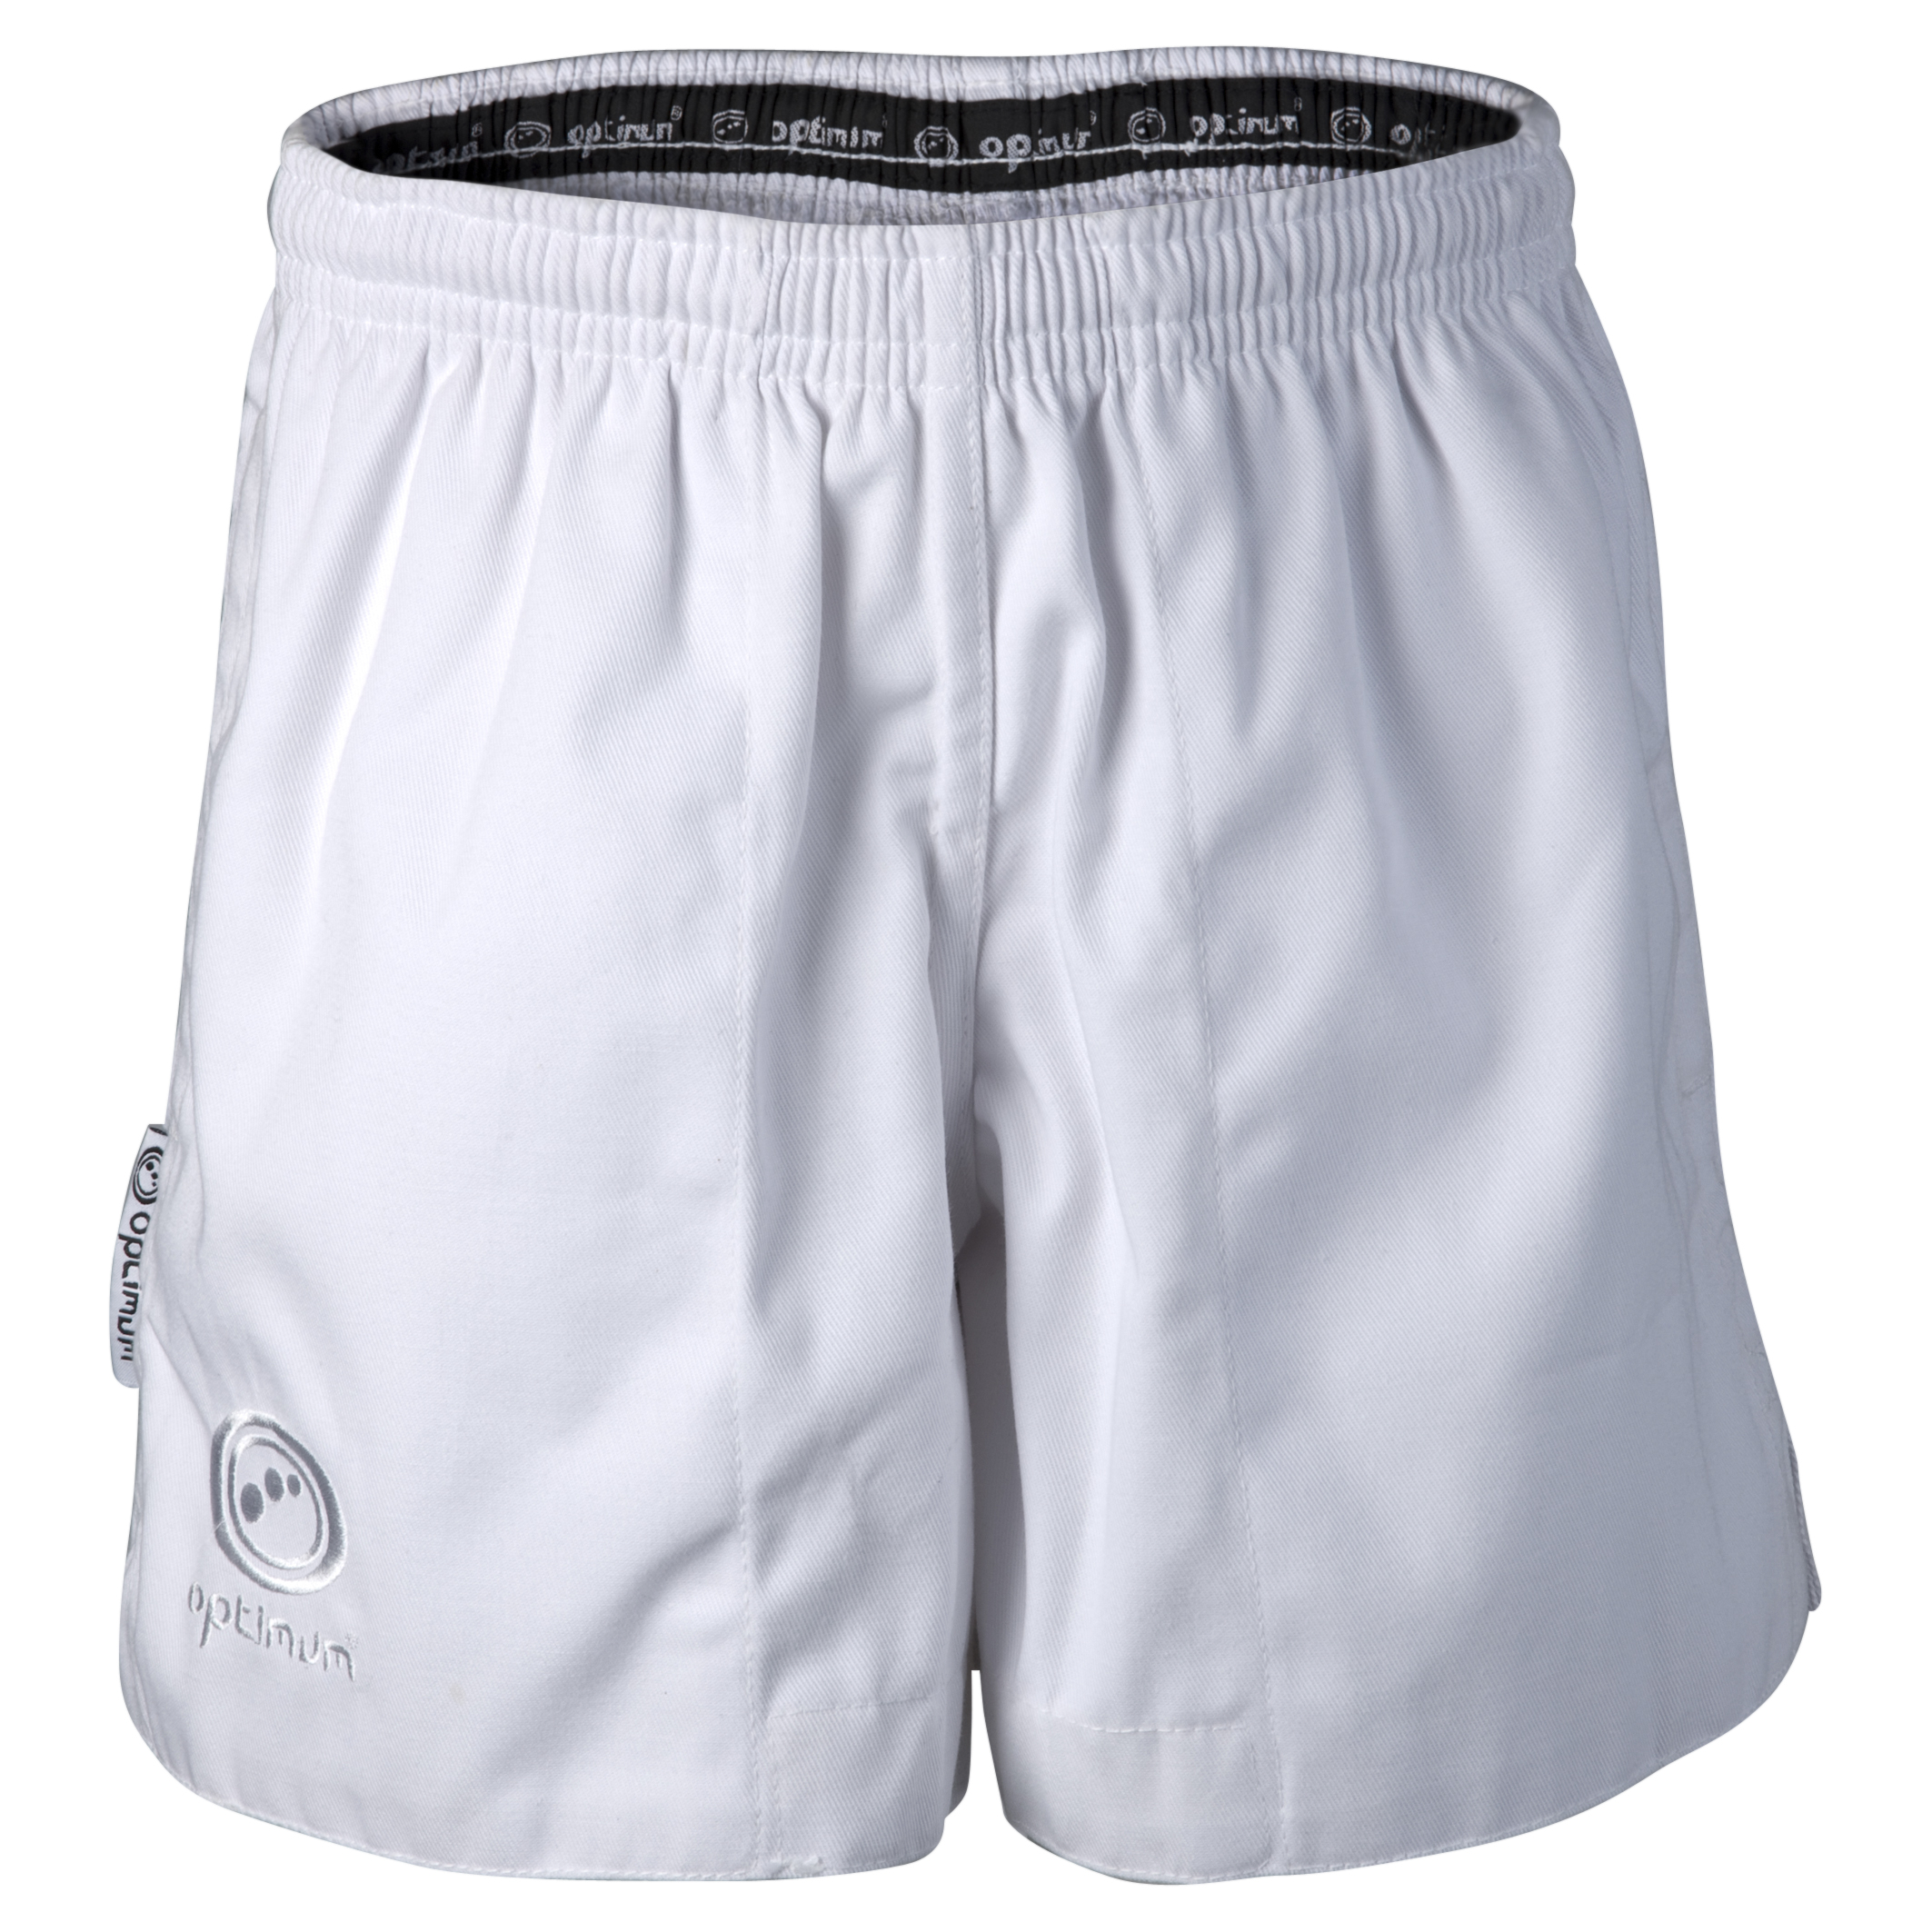 Optimum Auckland Rugby Shorts - White - Kids